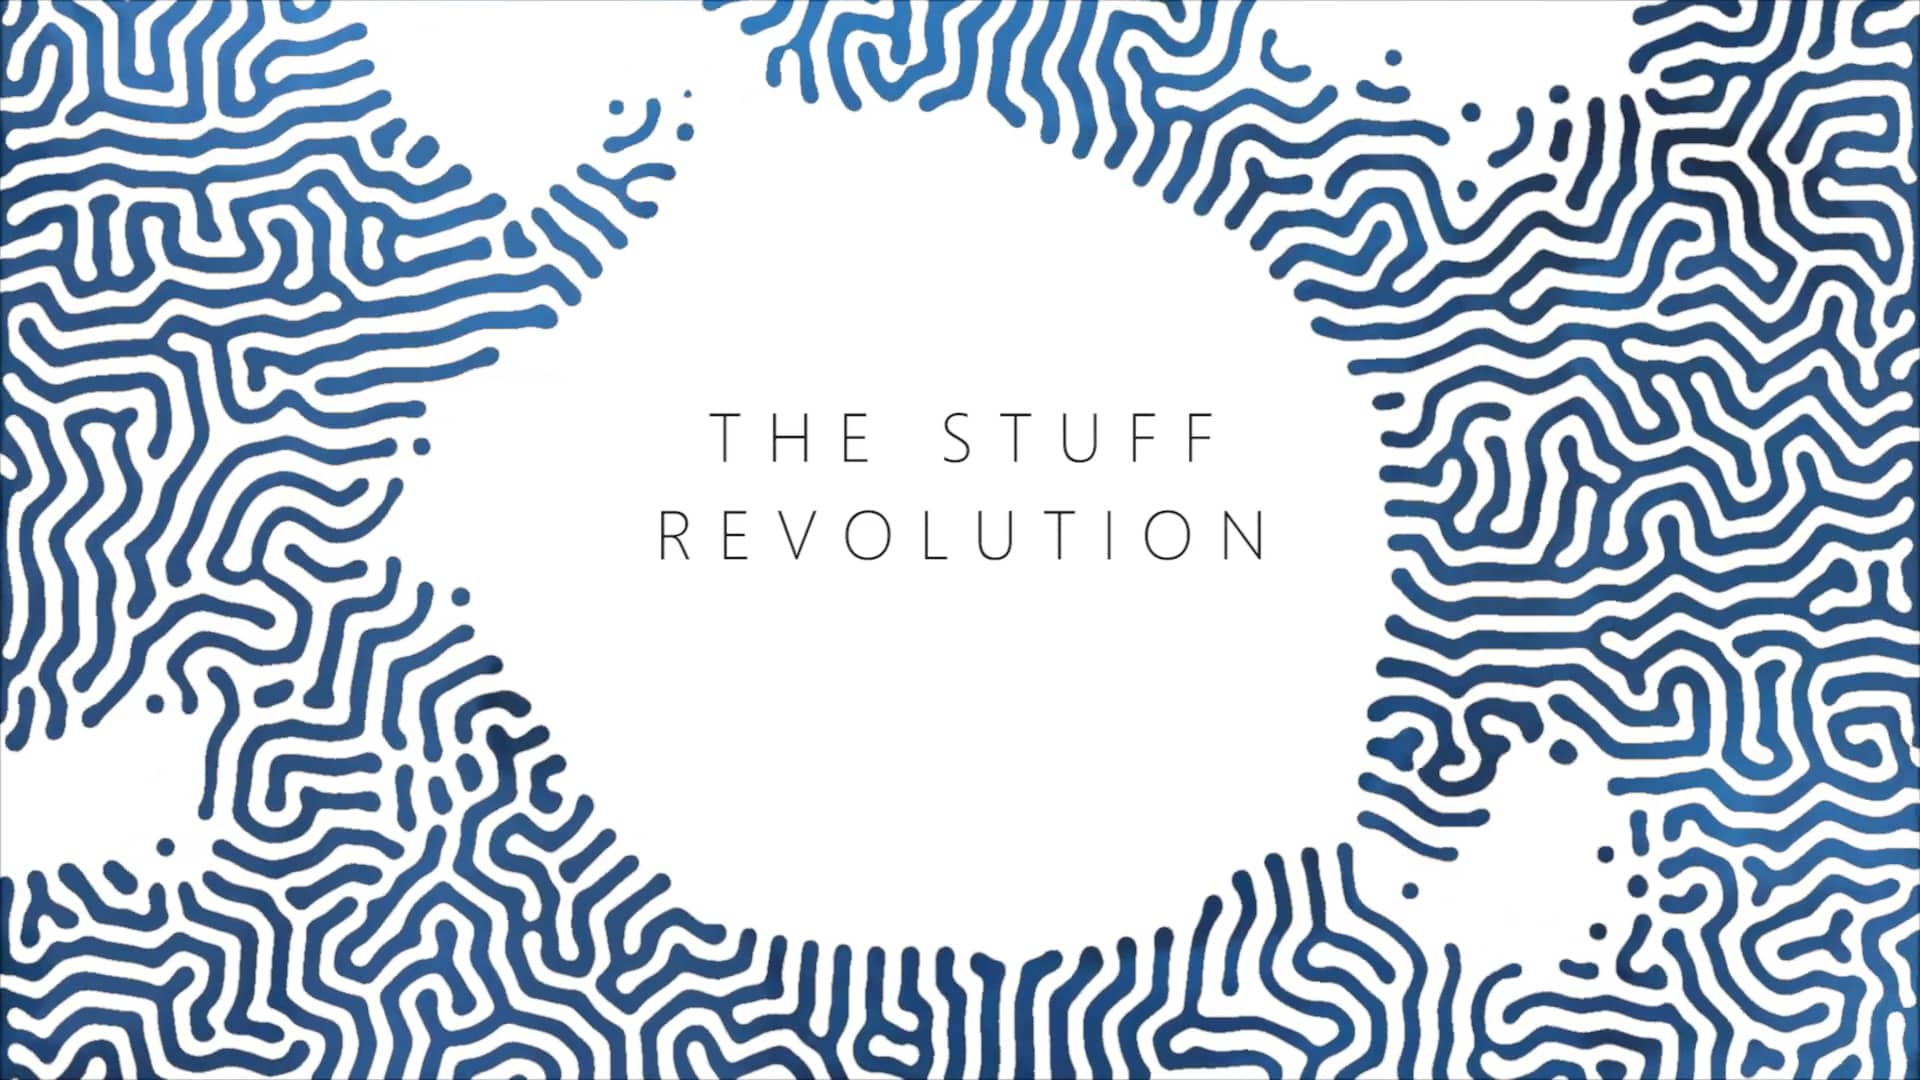 The Stuff Revolution